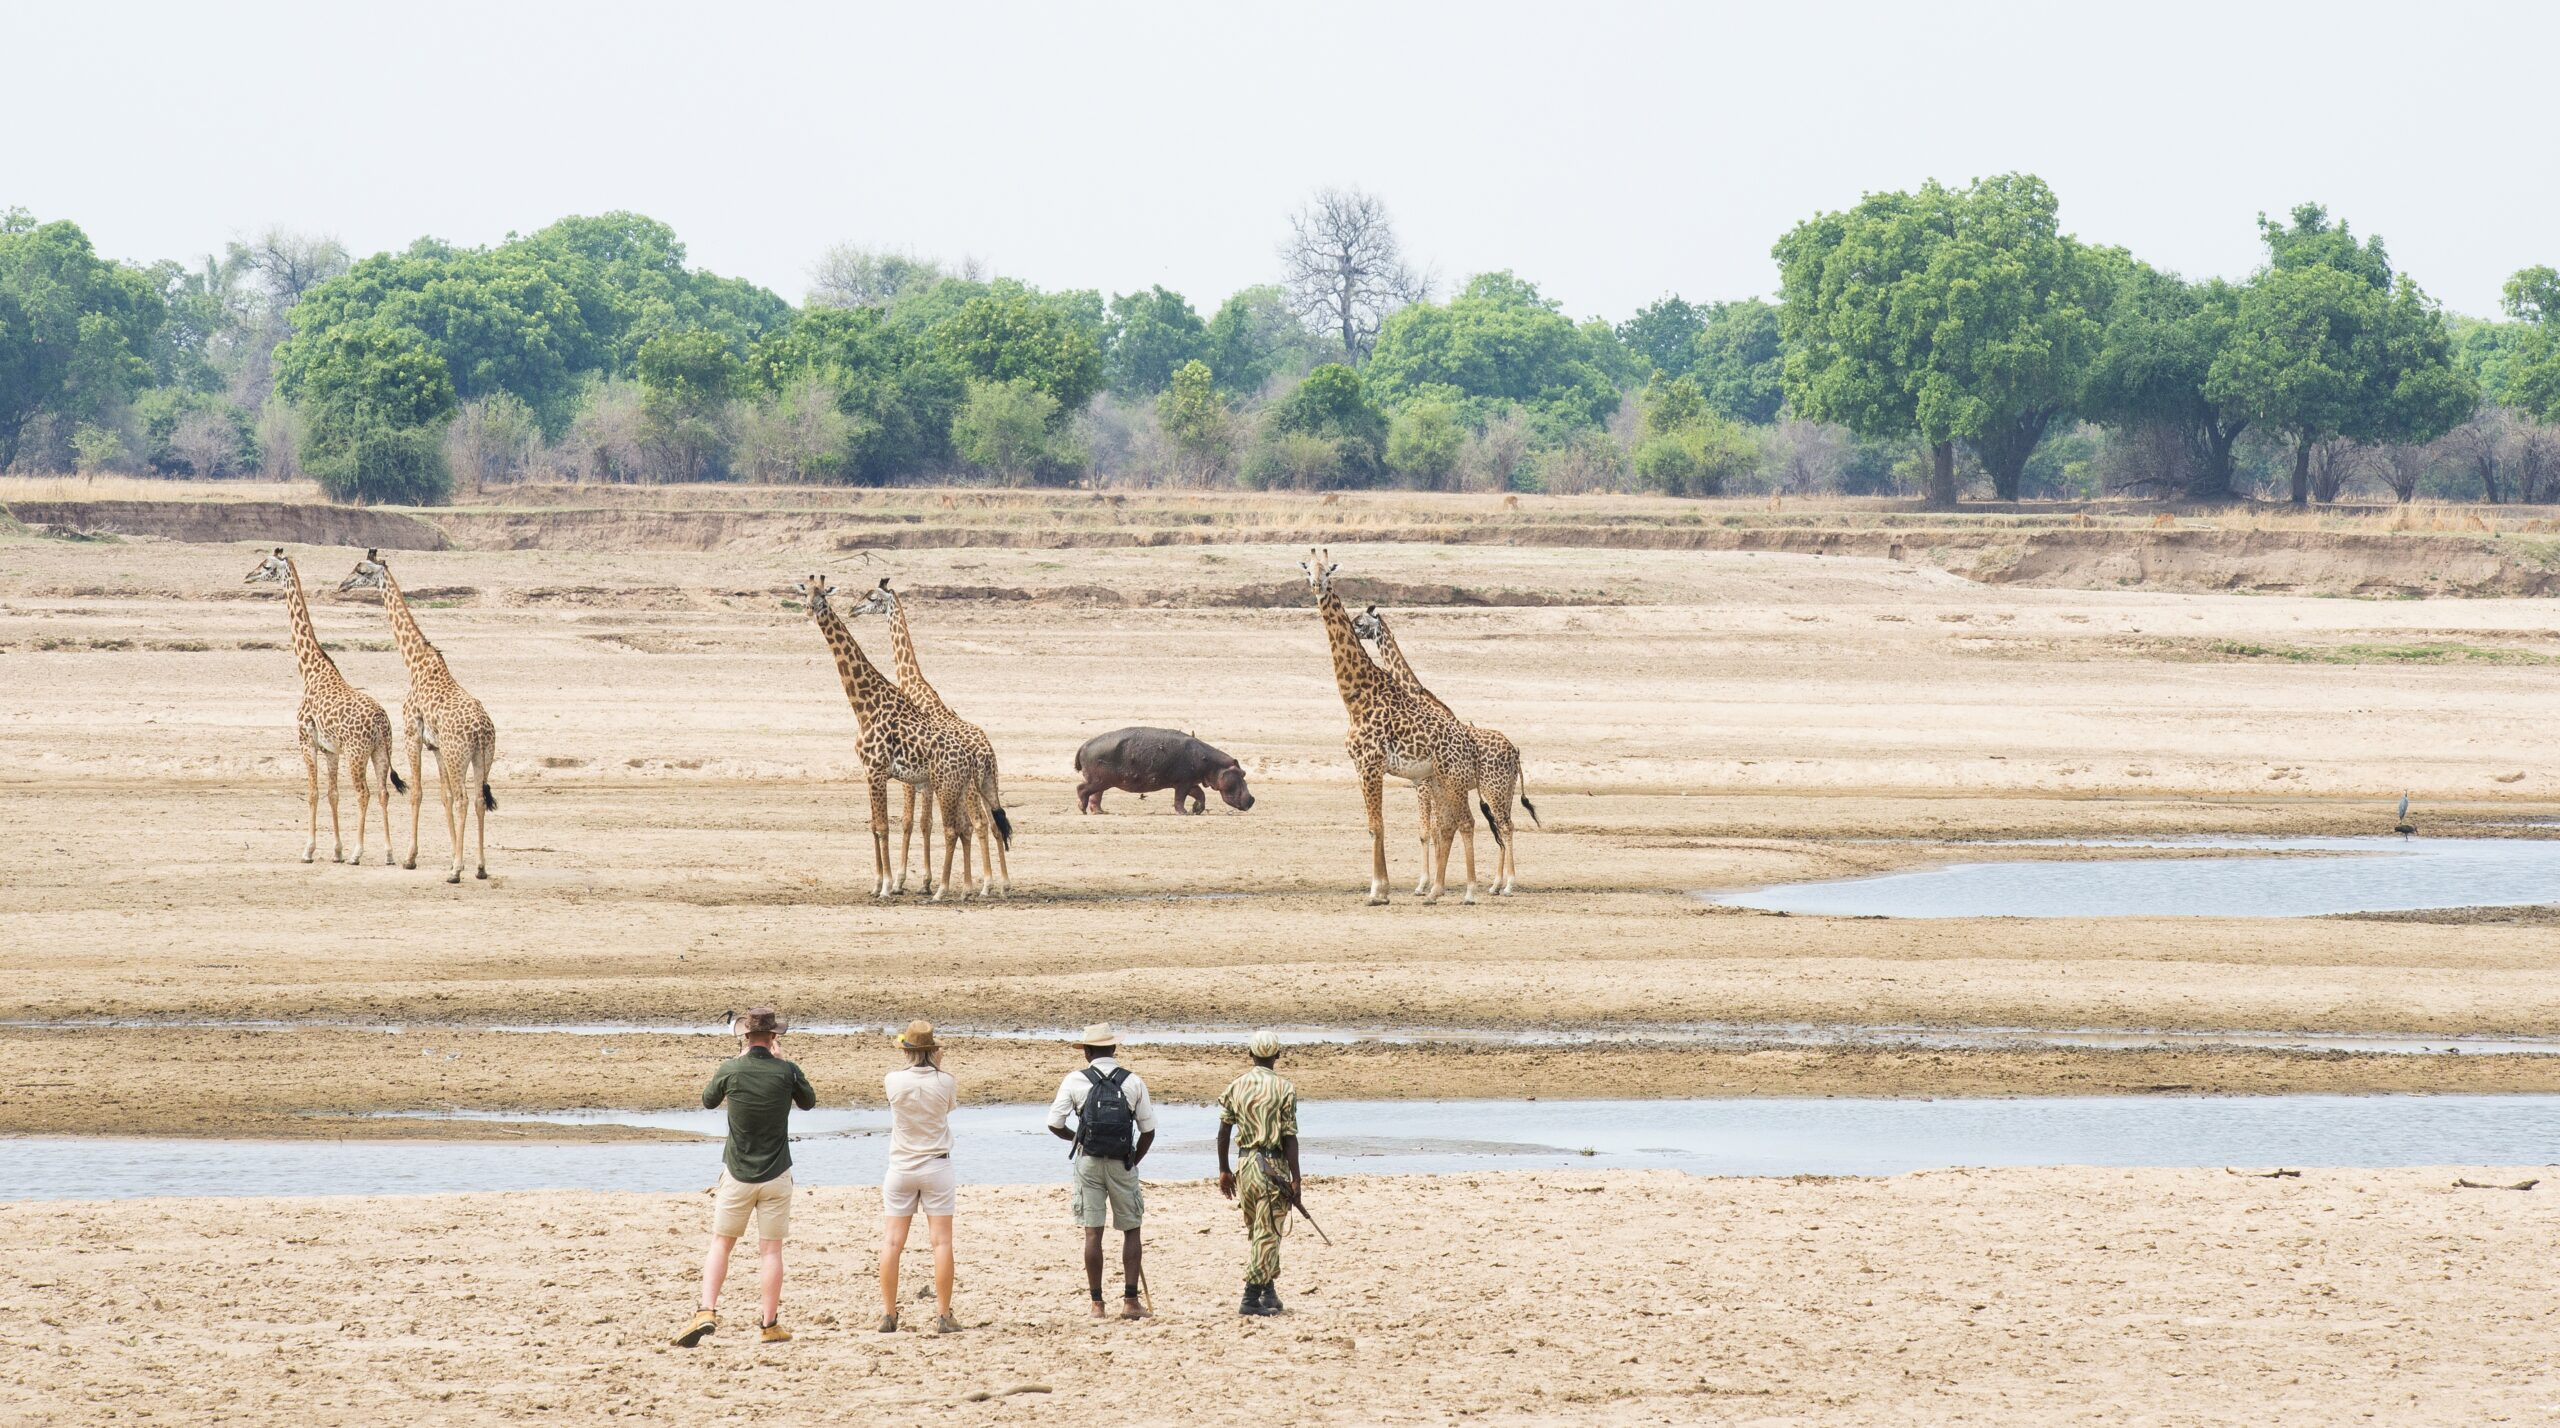 walking safari with giraffe and hippo by river